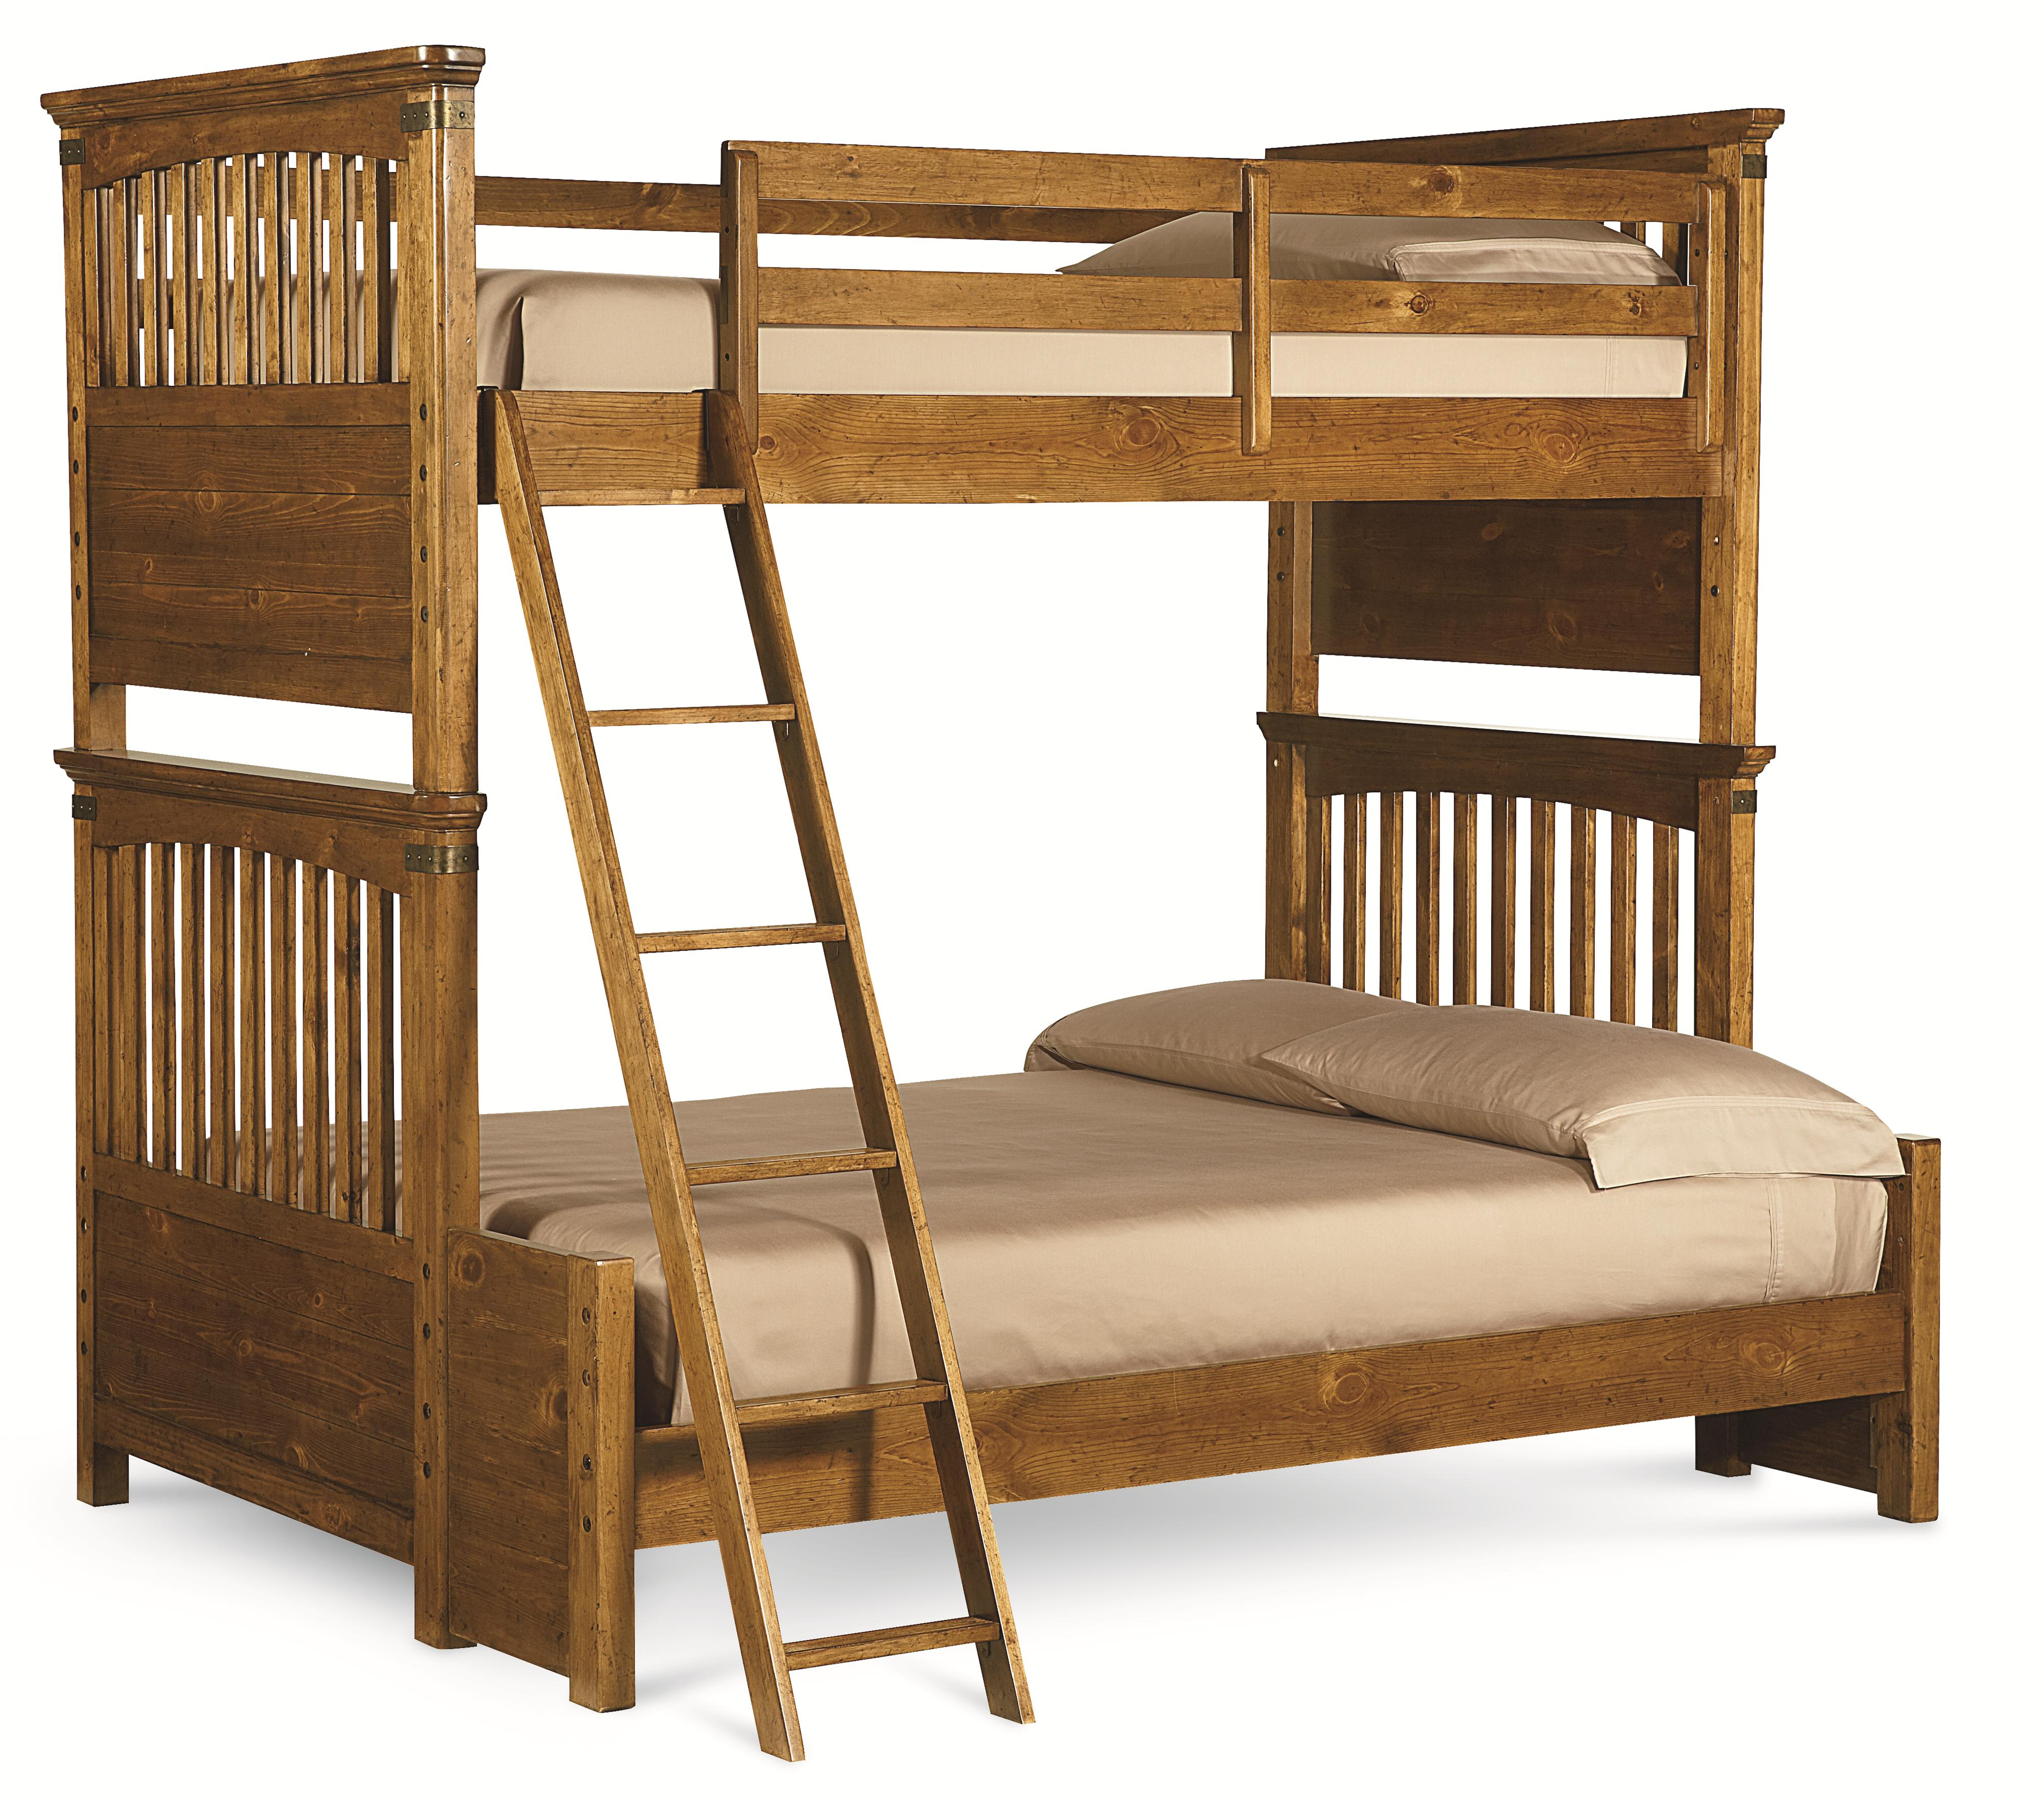 Legacy Classic Kids Bryce Canyon Twin Over Full Bunk Bed - Item Number: 3900-8140K